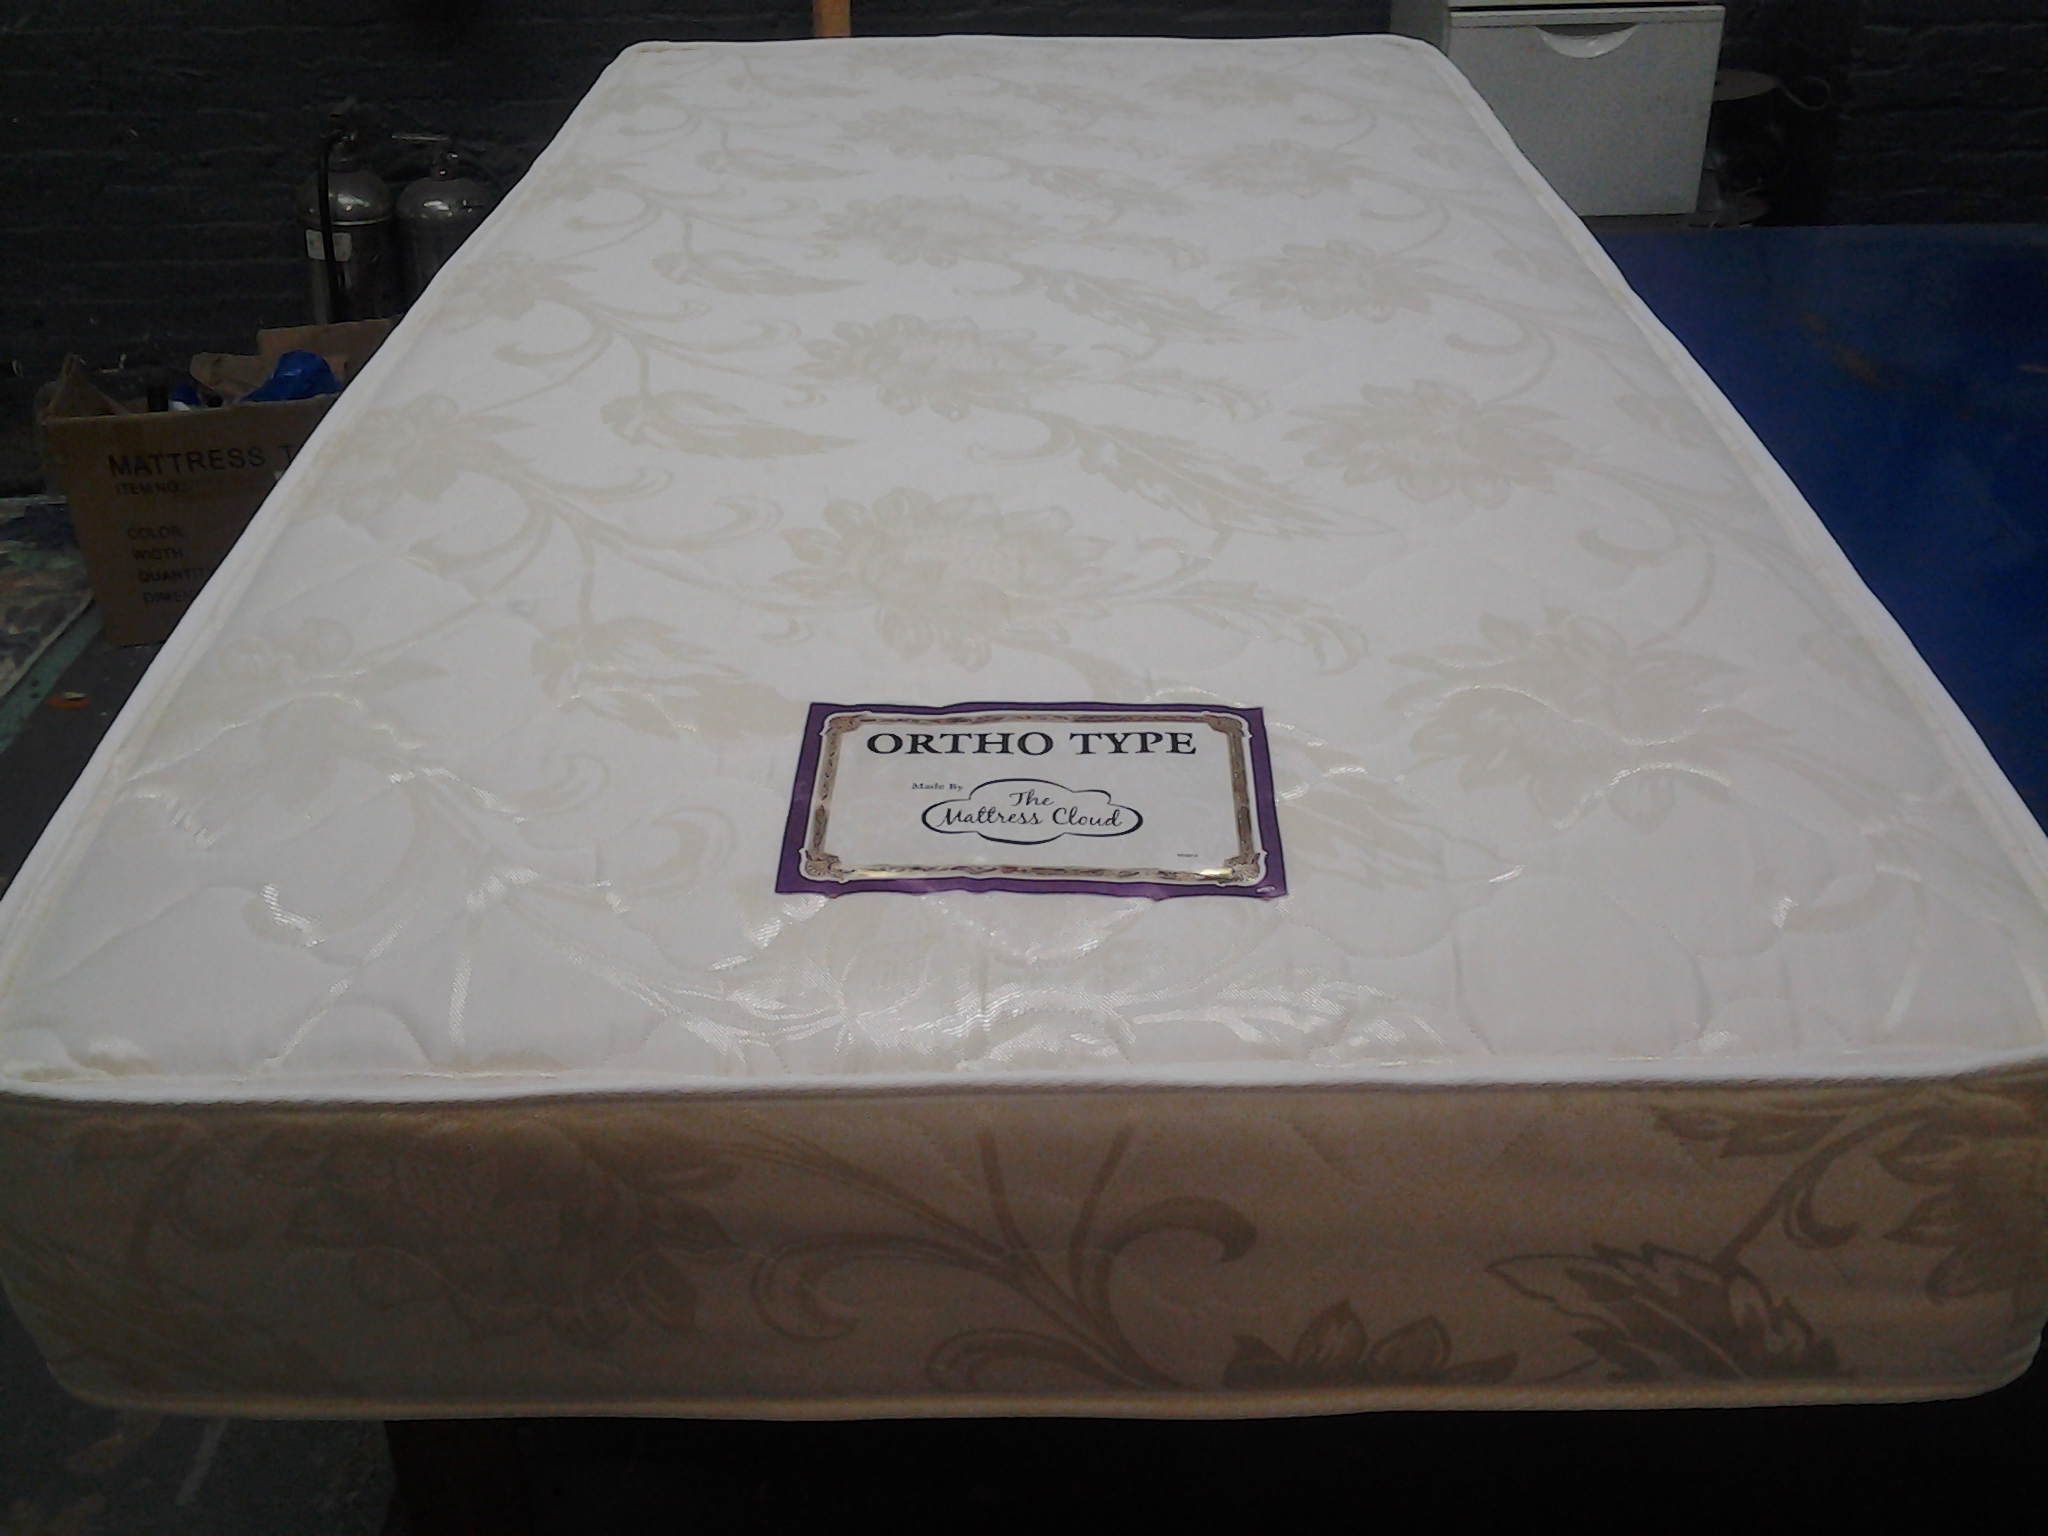 Recalled Mattress Cloud mattress